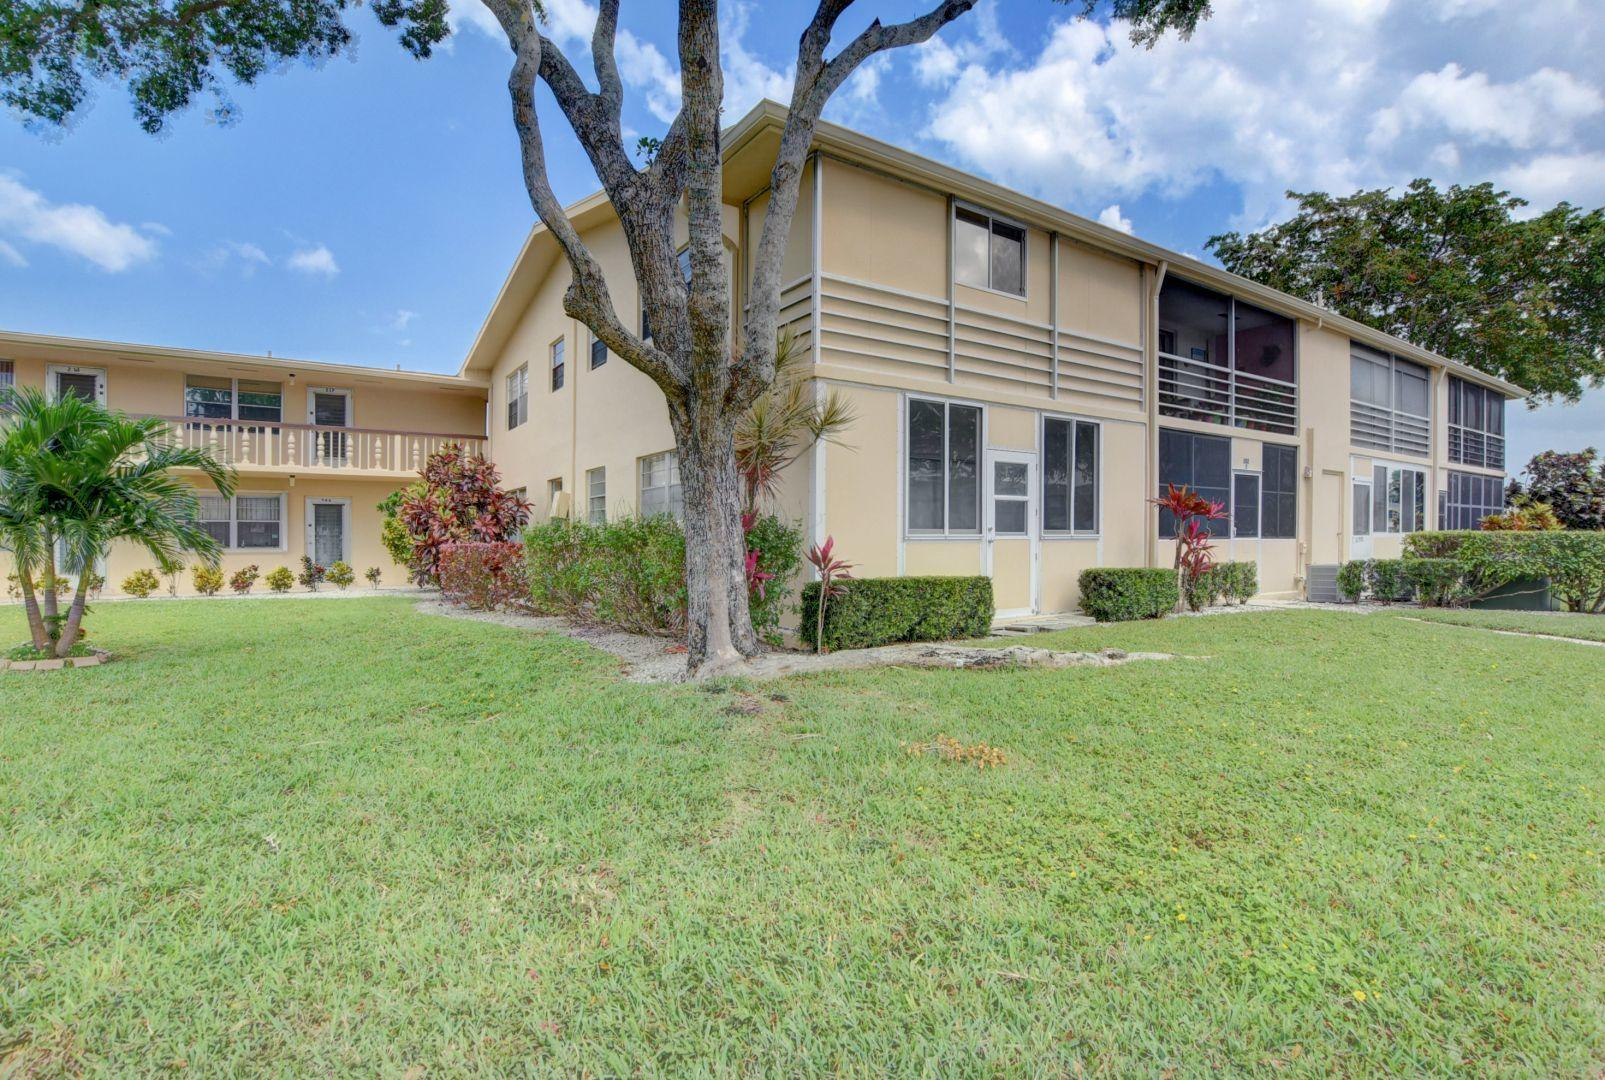 Home for sale in Sheffield, Century Villages West Palm Beach Florida